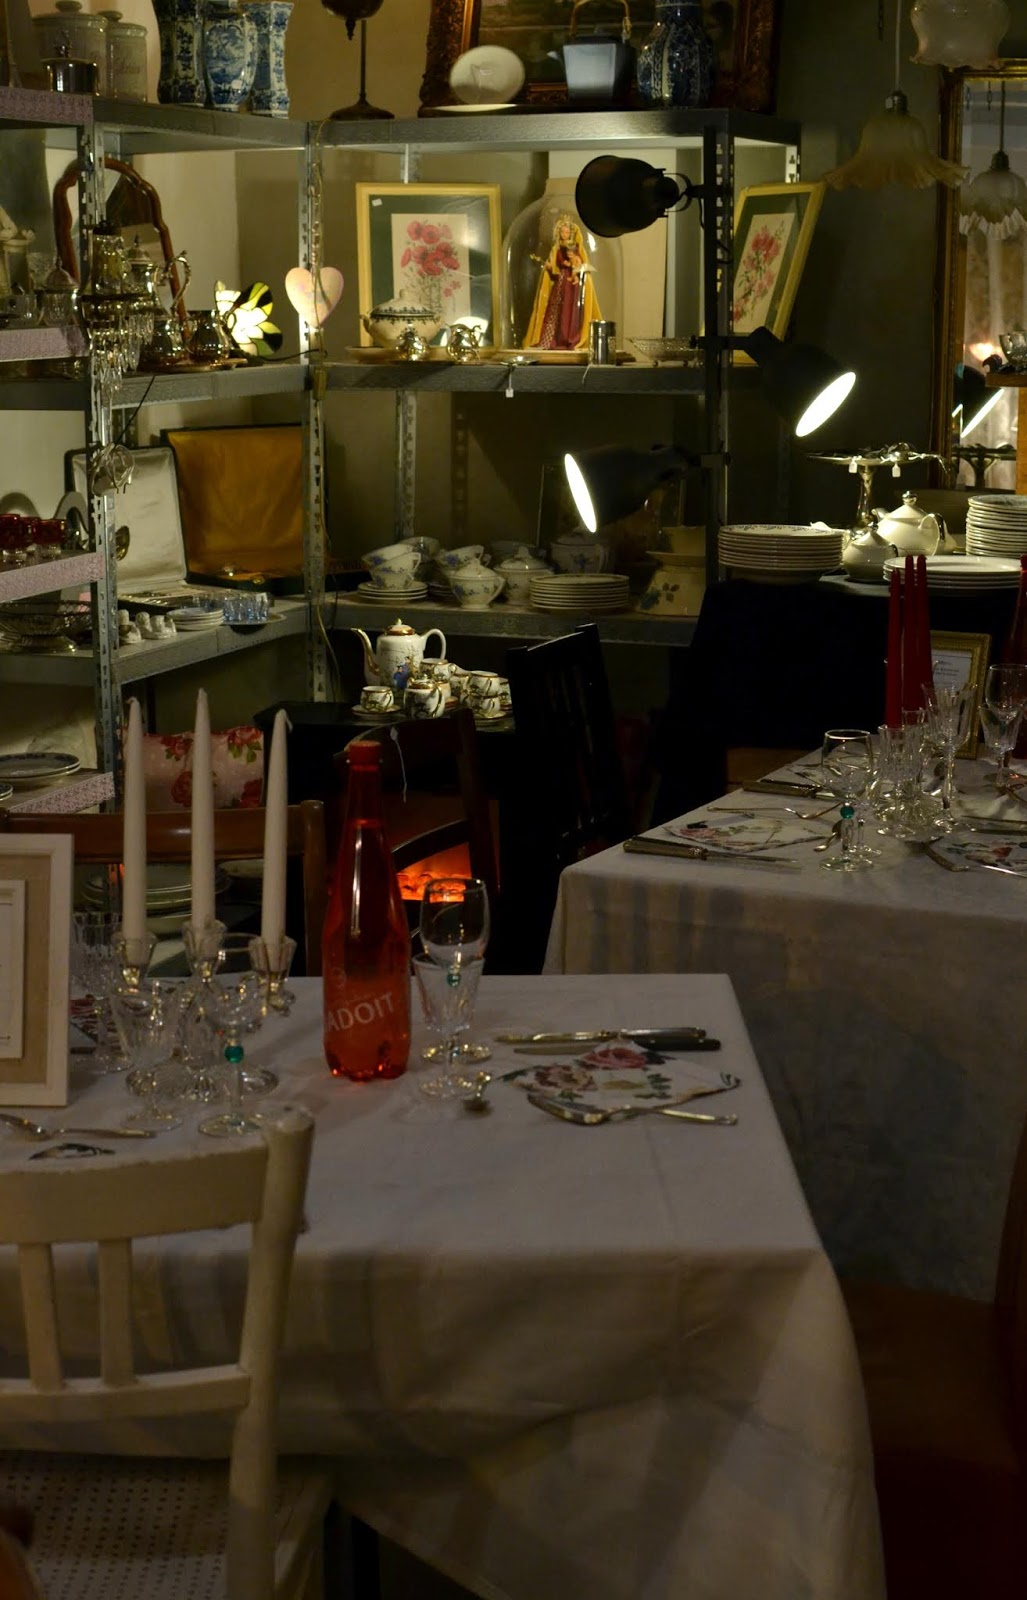 Diner en brocante - pop-up restaurant